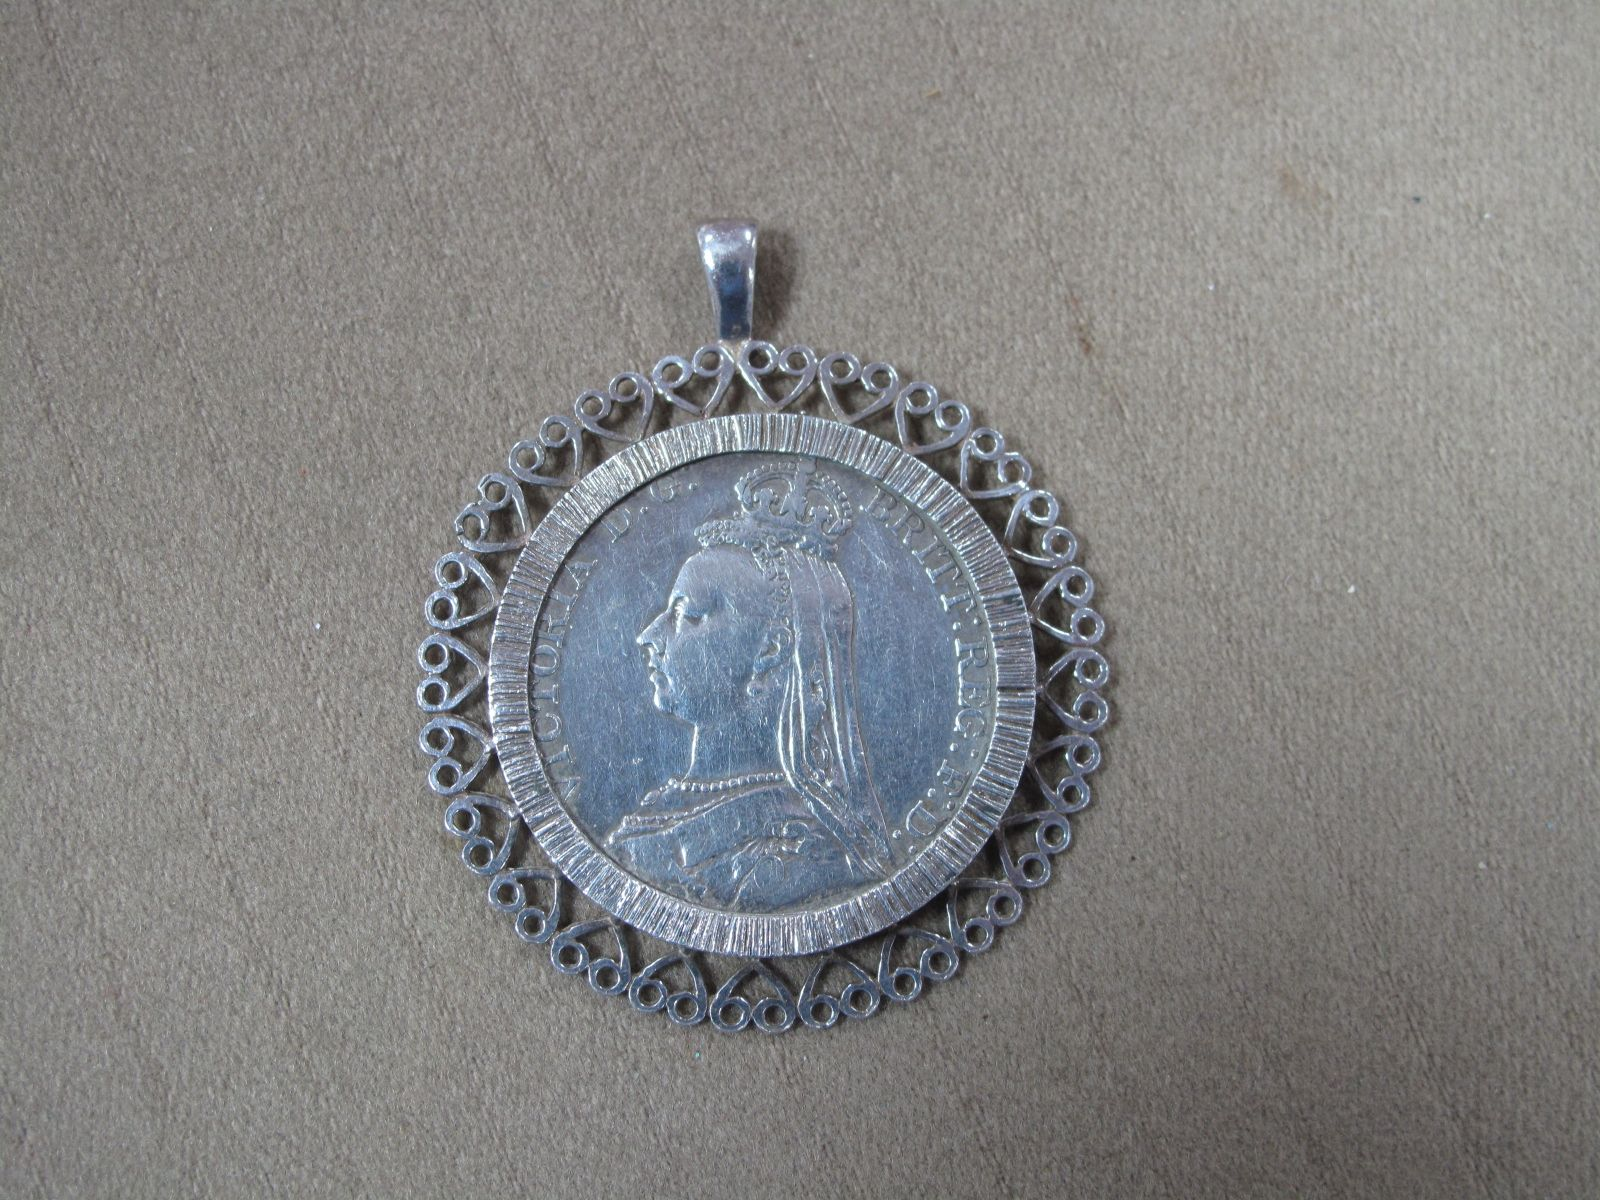 A 1890 GB Silver Crown, in a loose mount.